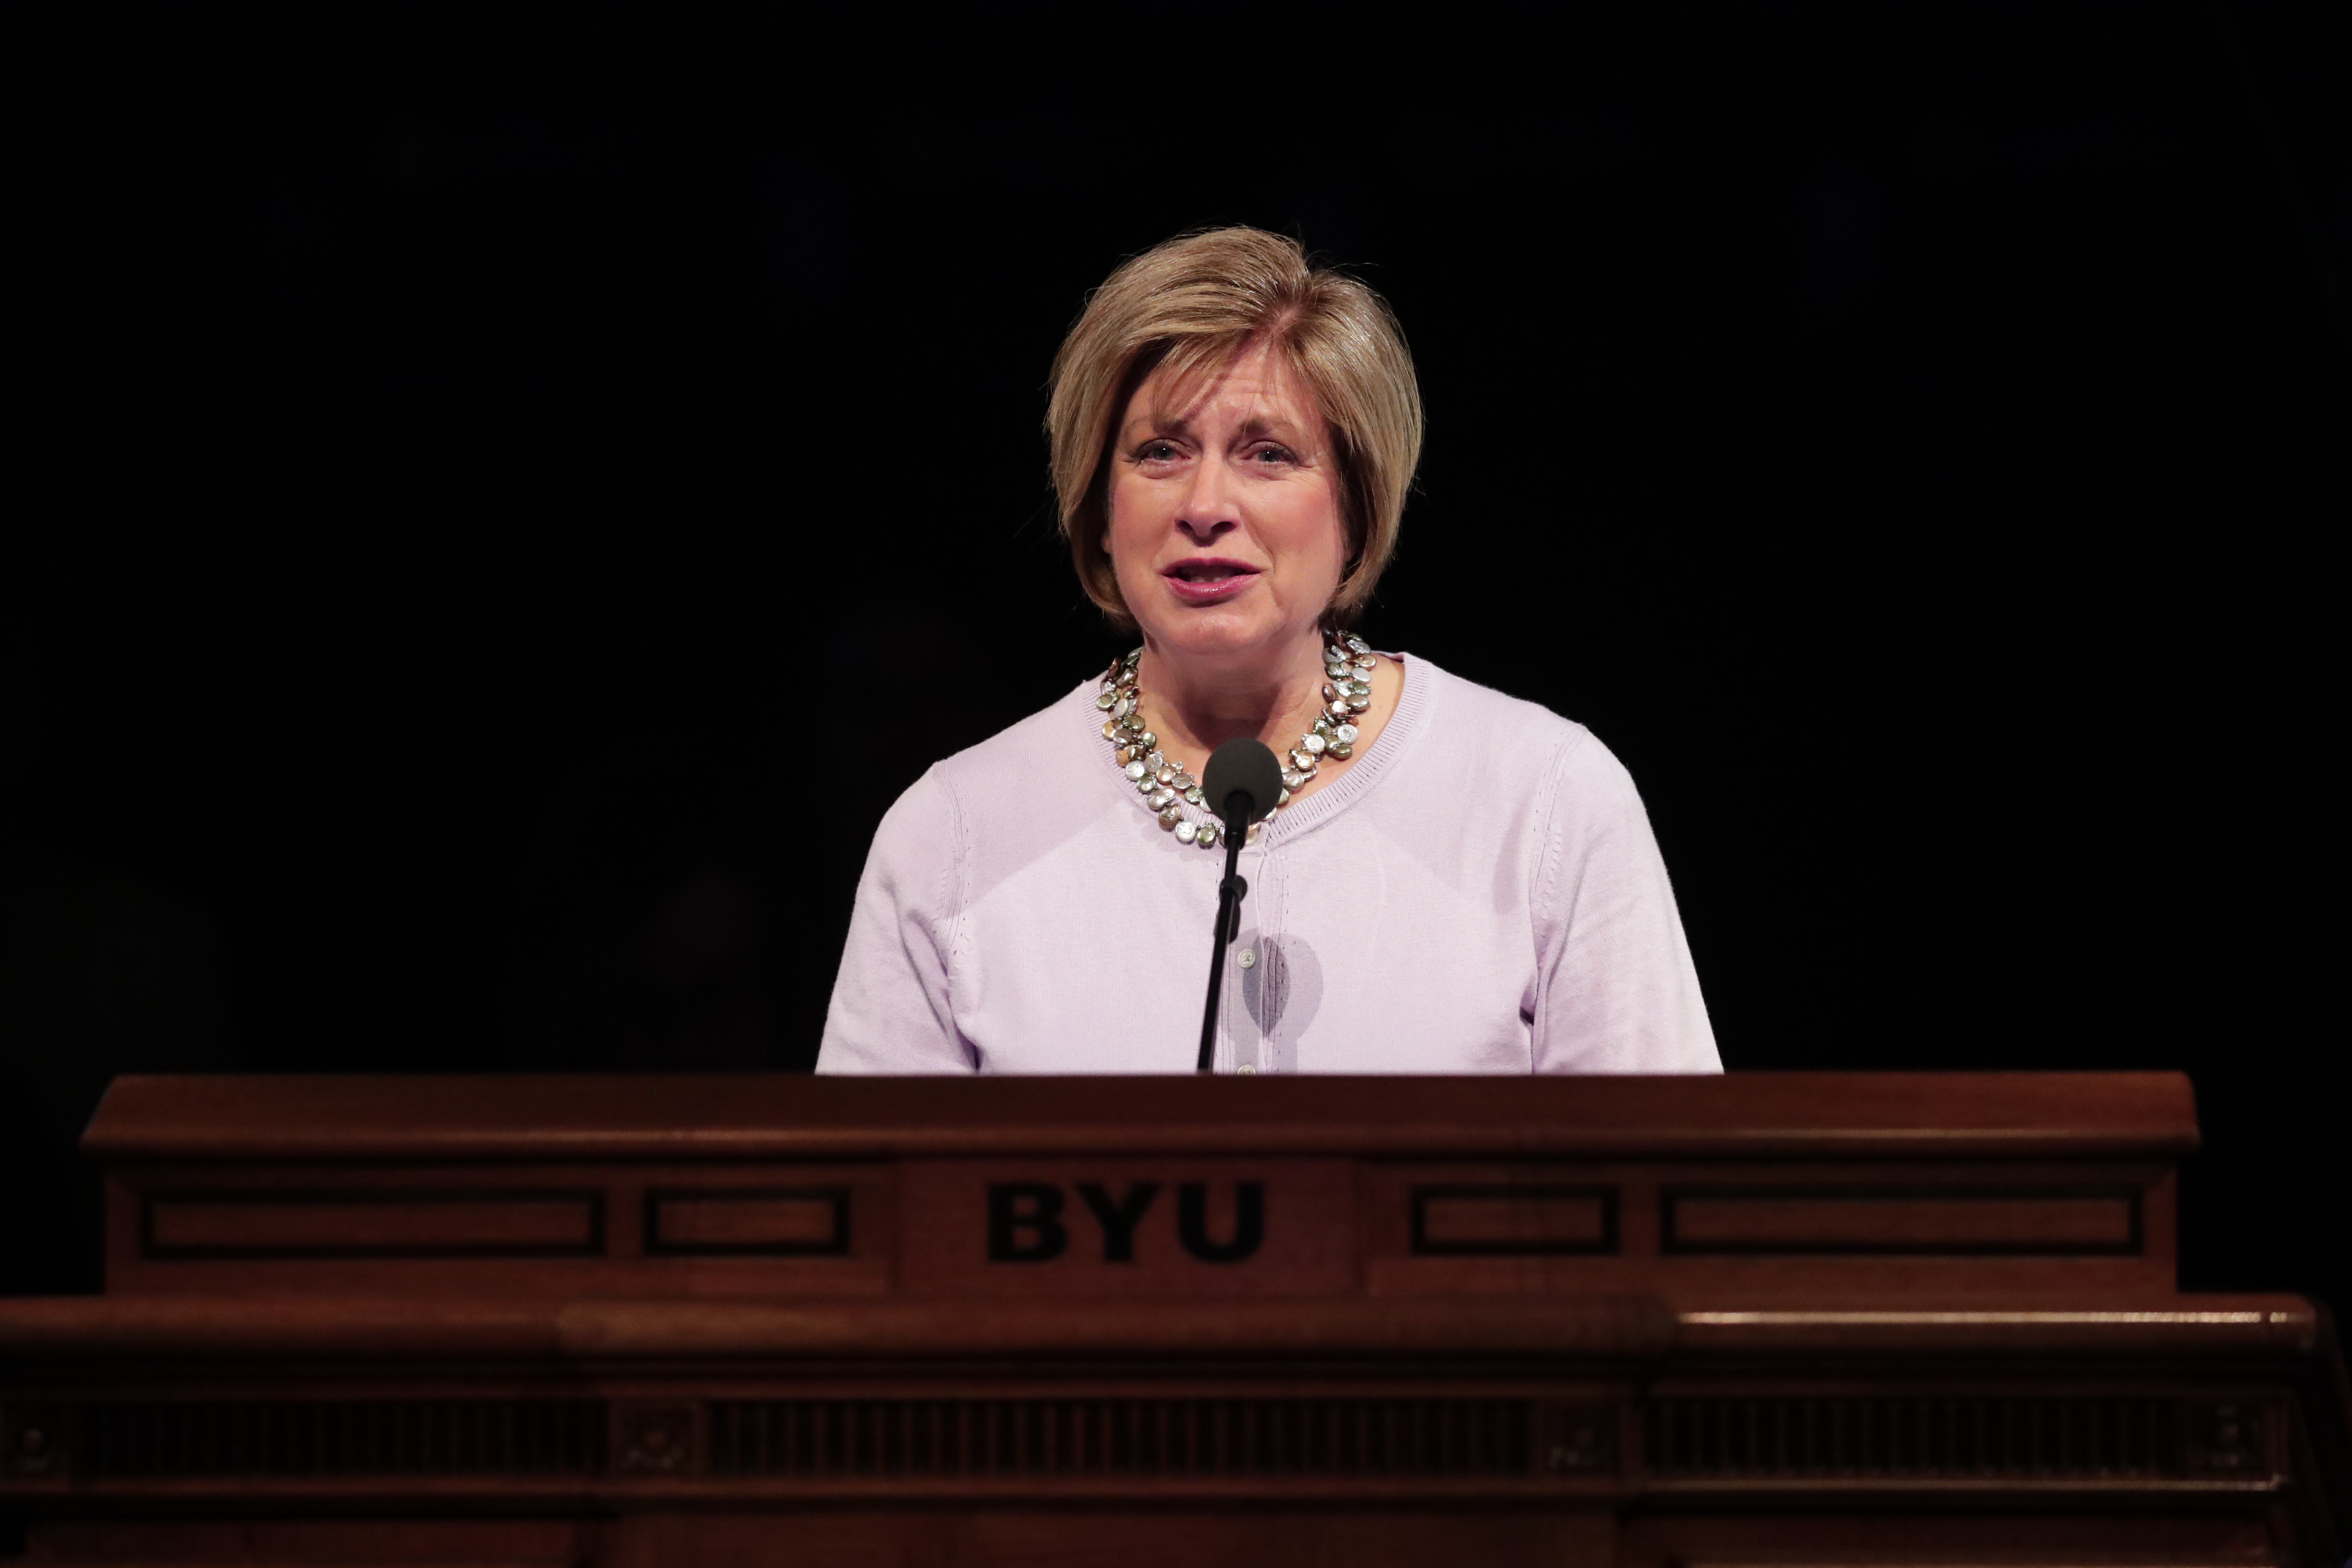 Sister Julie B. Beck, former Relief Society general president, delivers her BYU Women's Conference keynote address, held in the Marriott Center in Provo, Utah, on May 2, 2019.